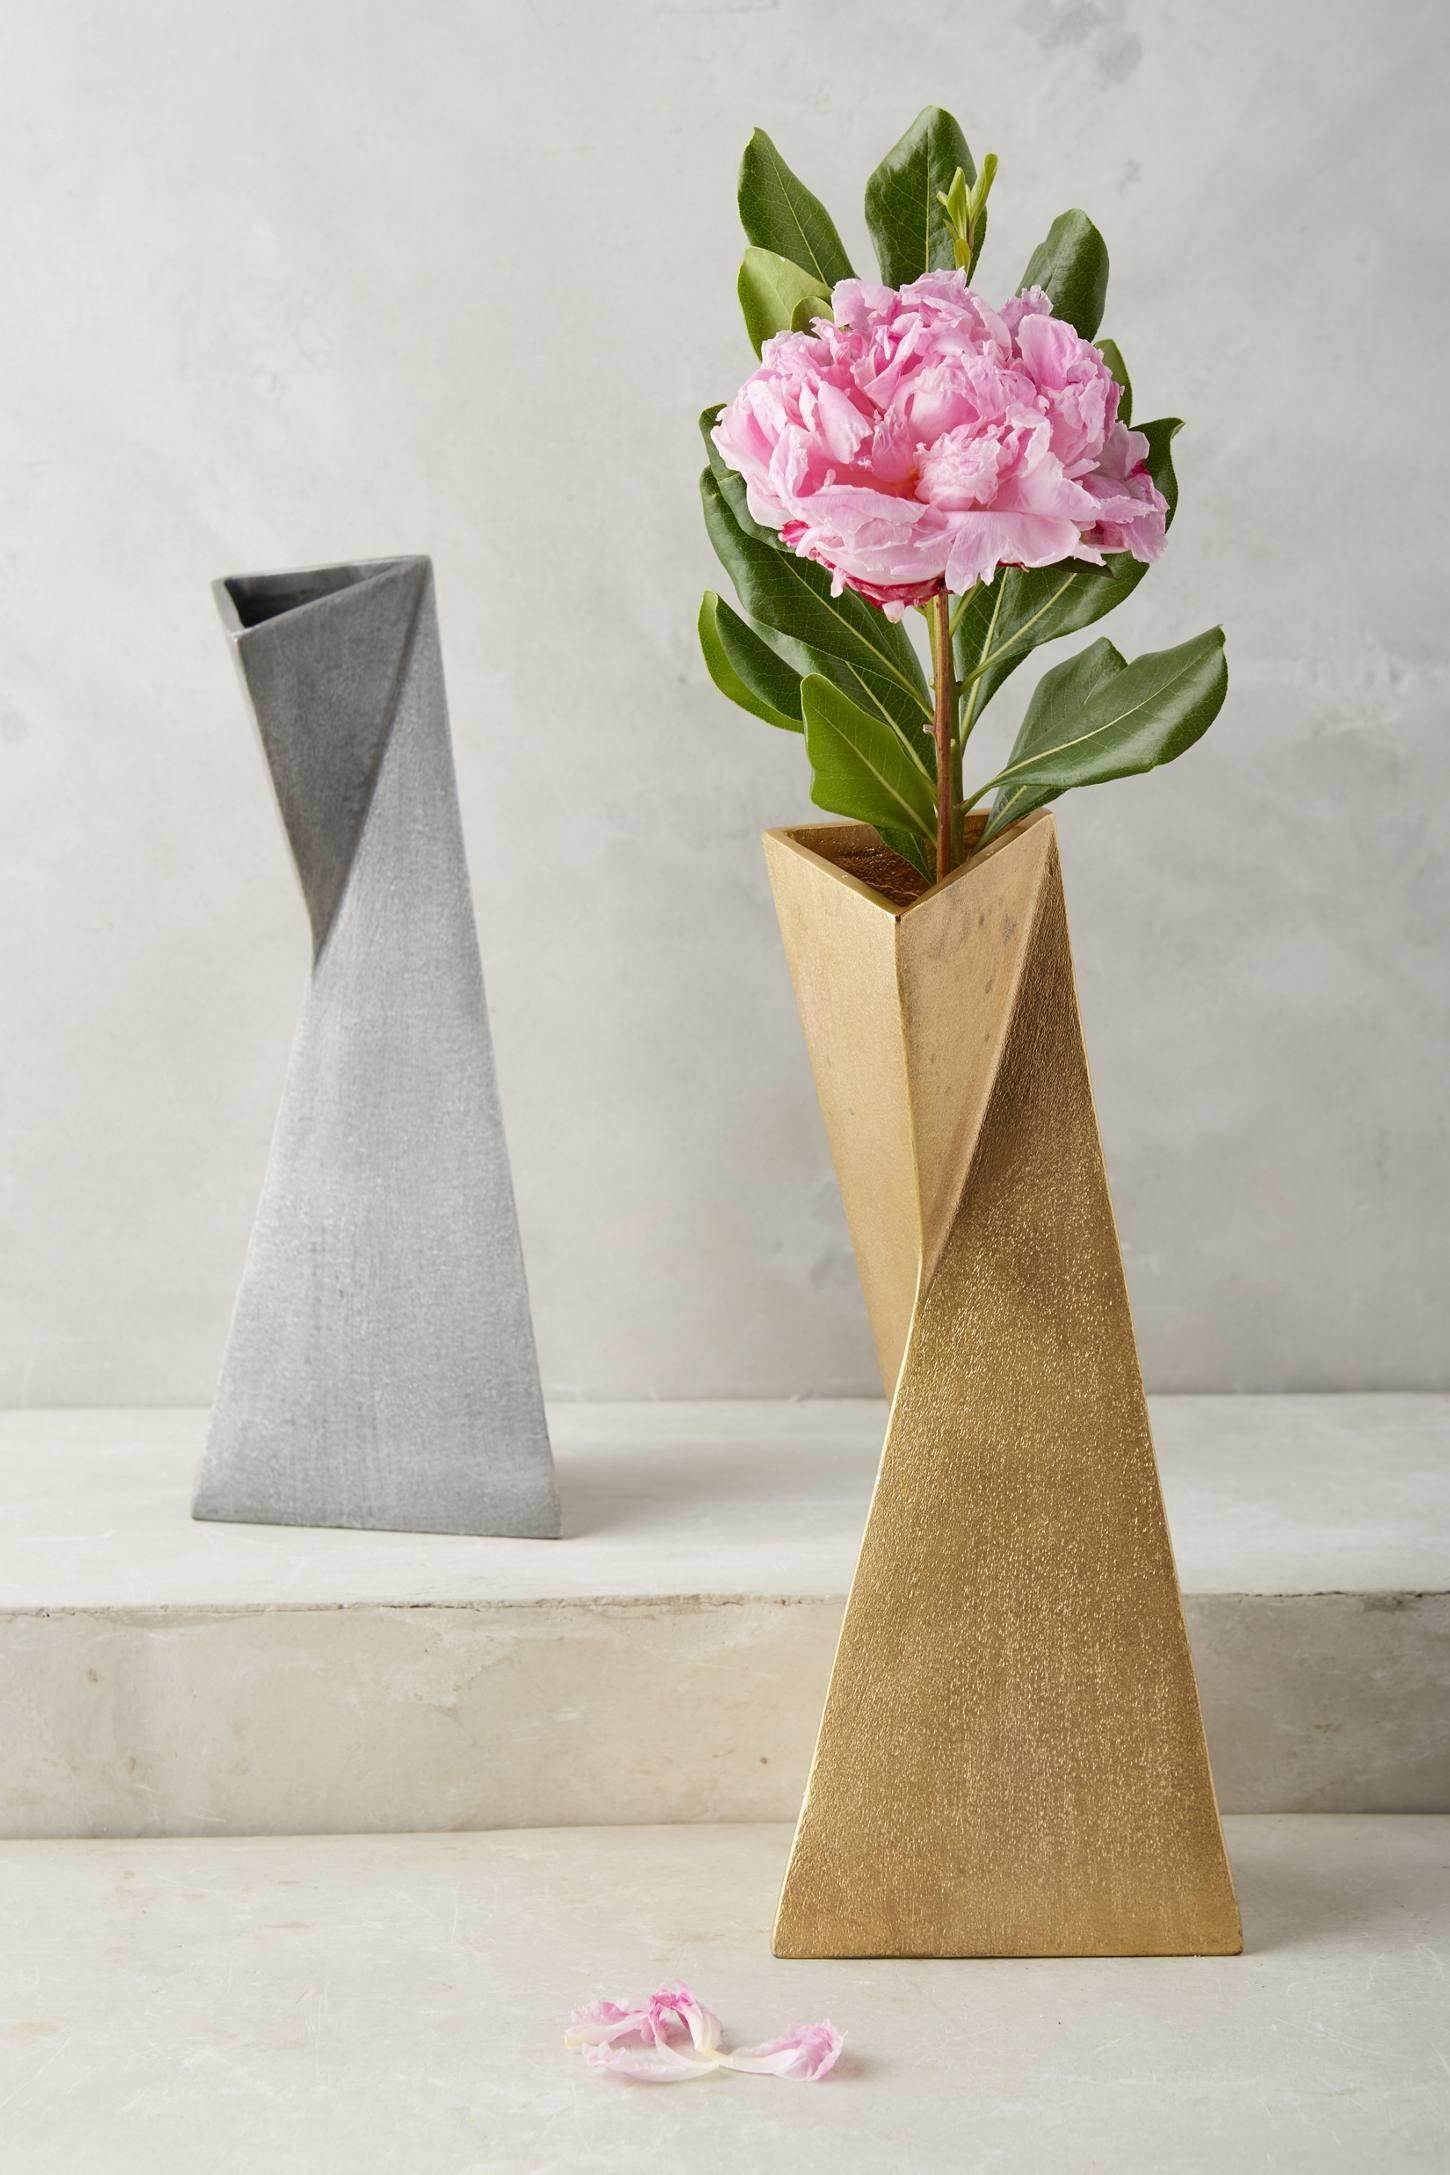 Sculpture Style New Geo Pieces